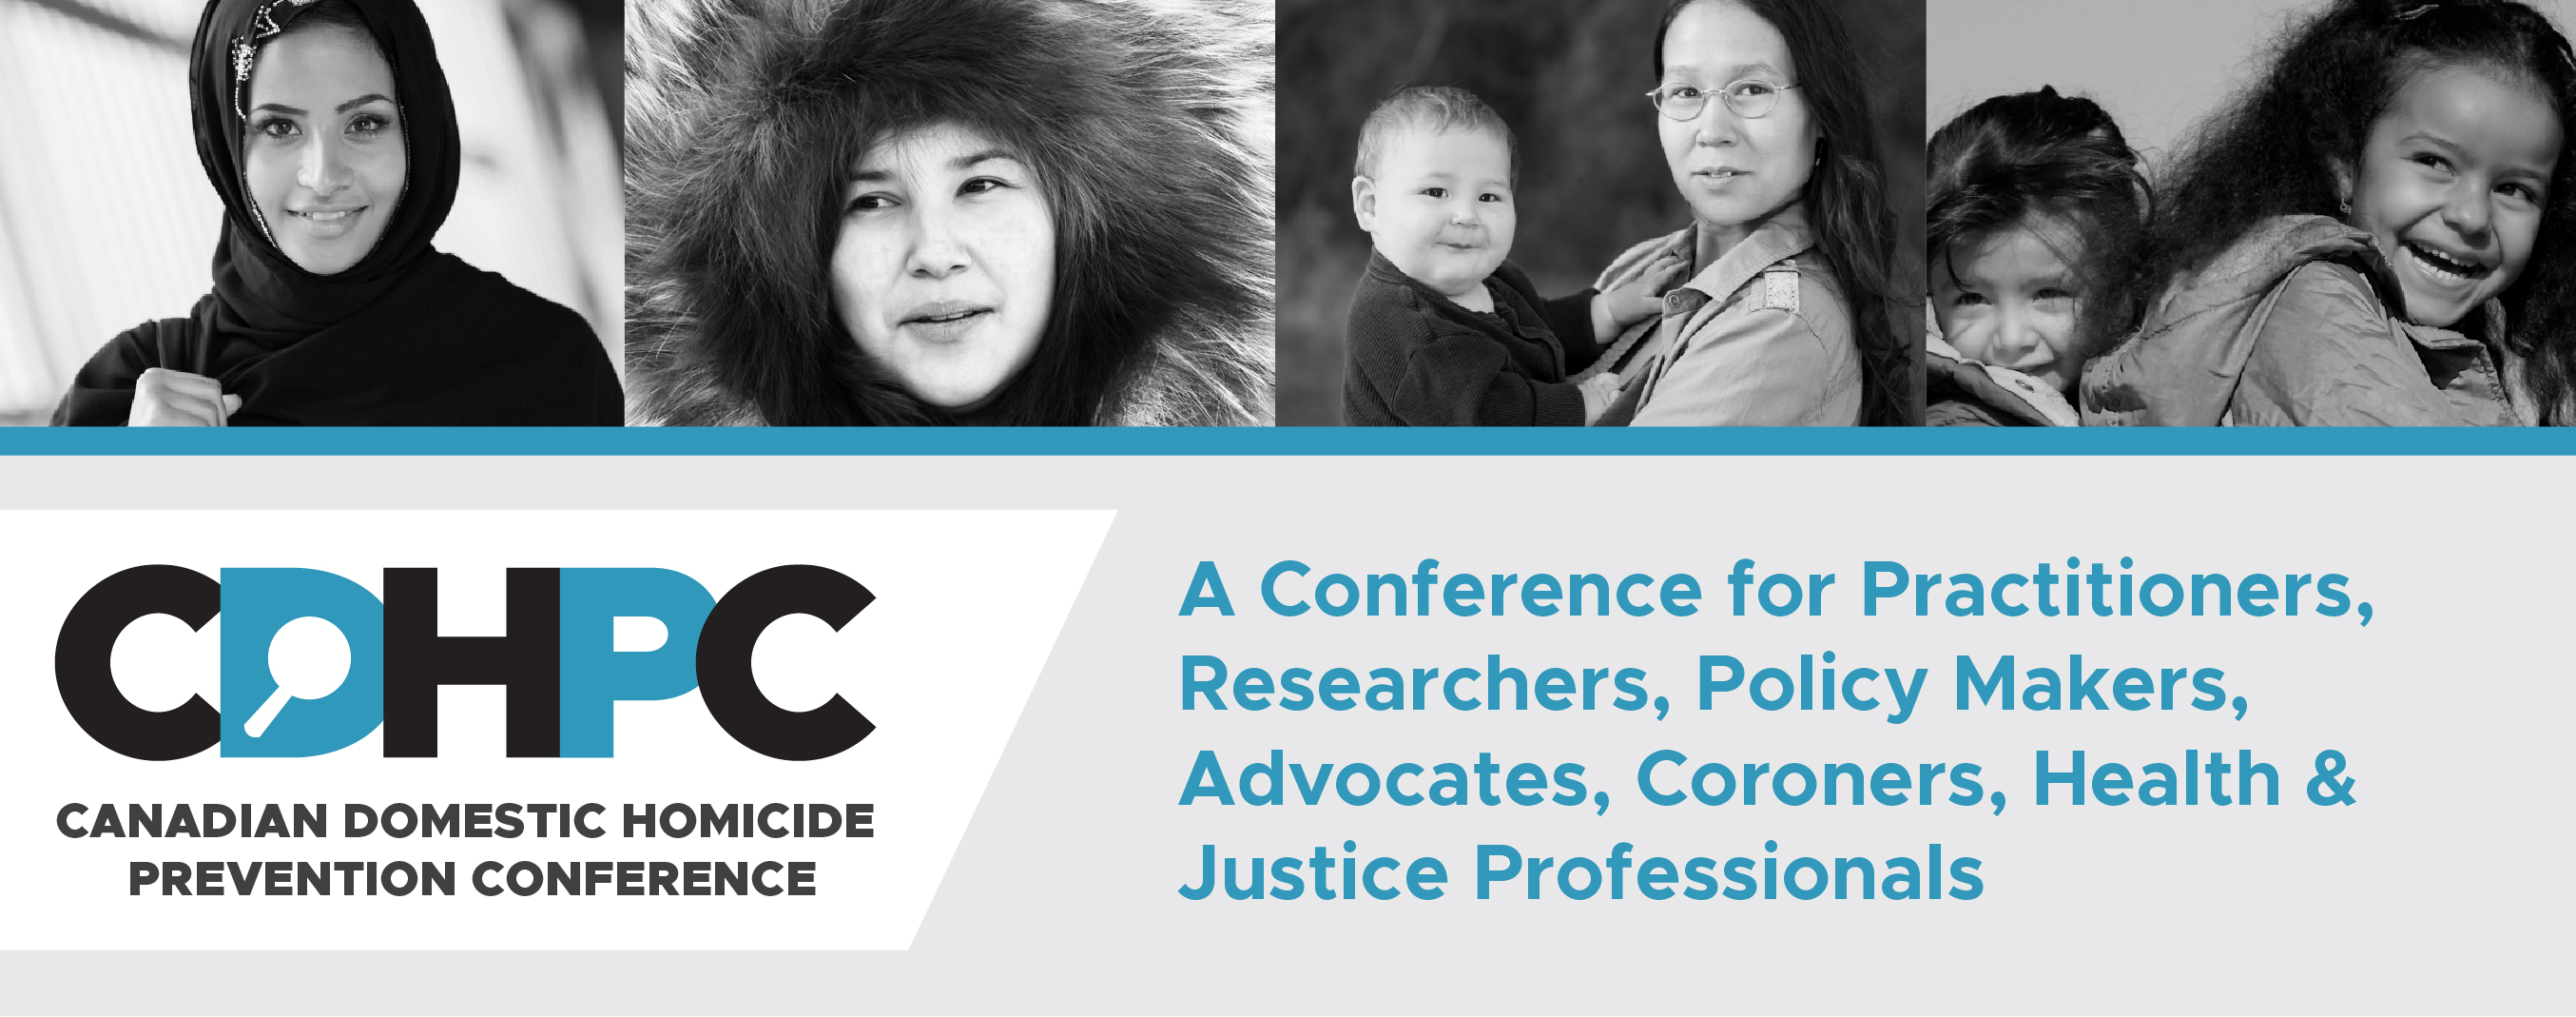 Canadian Domestic Homicide Prevention Conference Banner